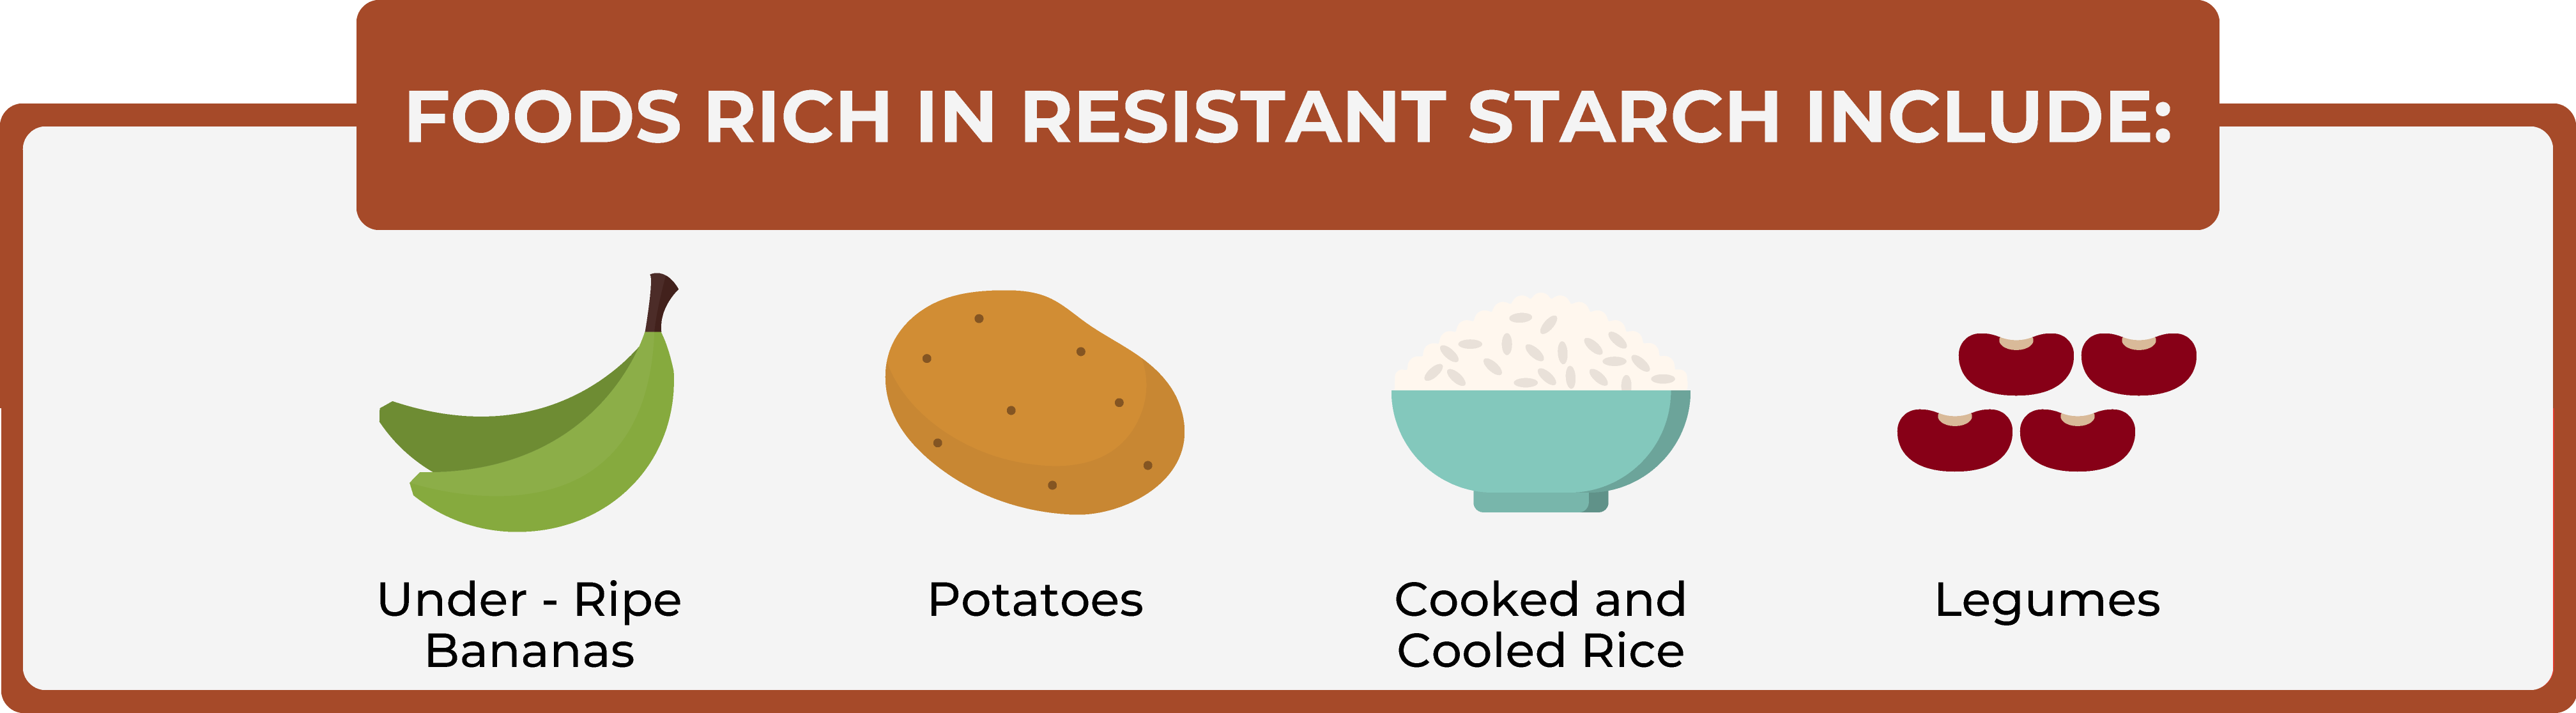 Foods rich in resistant starch